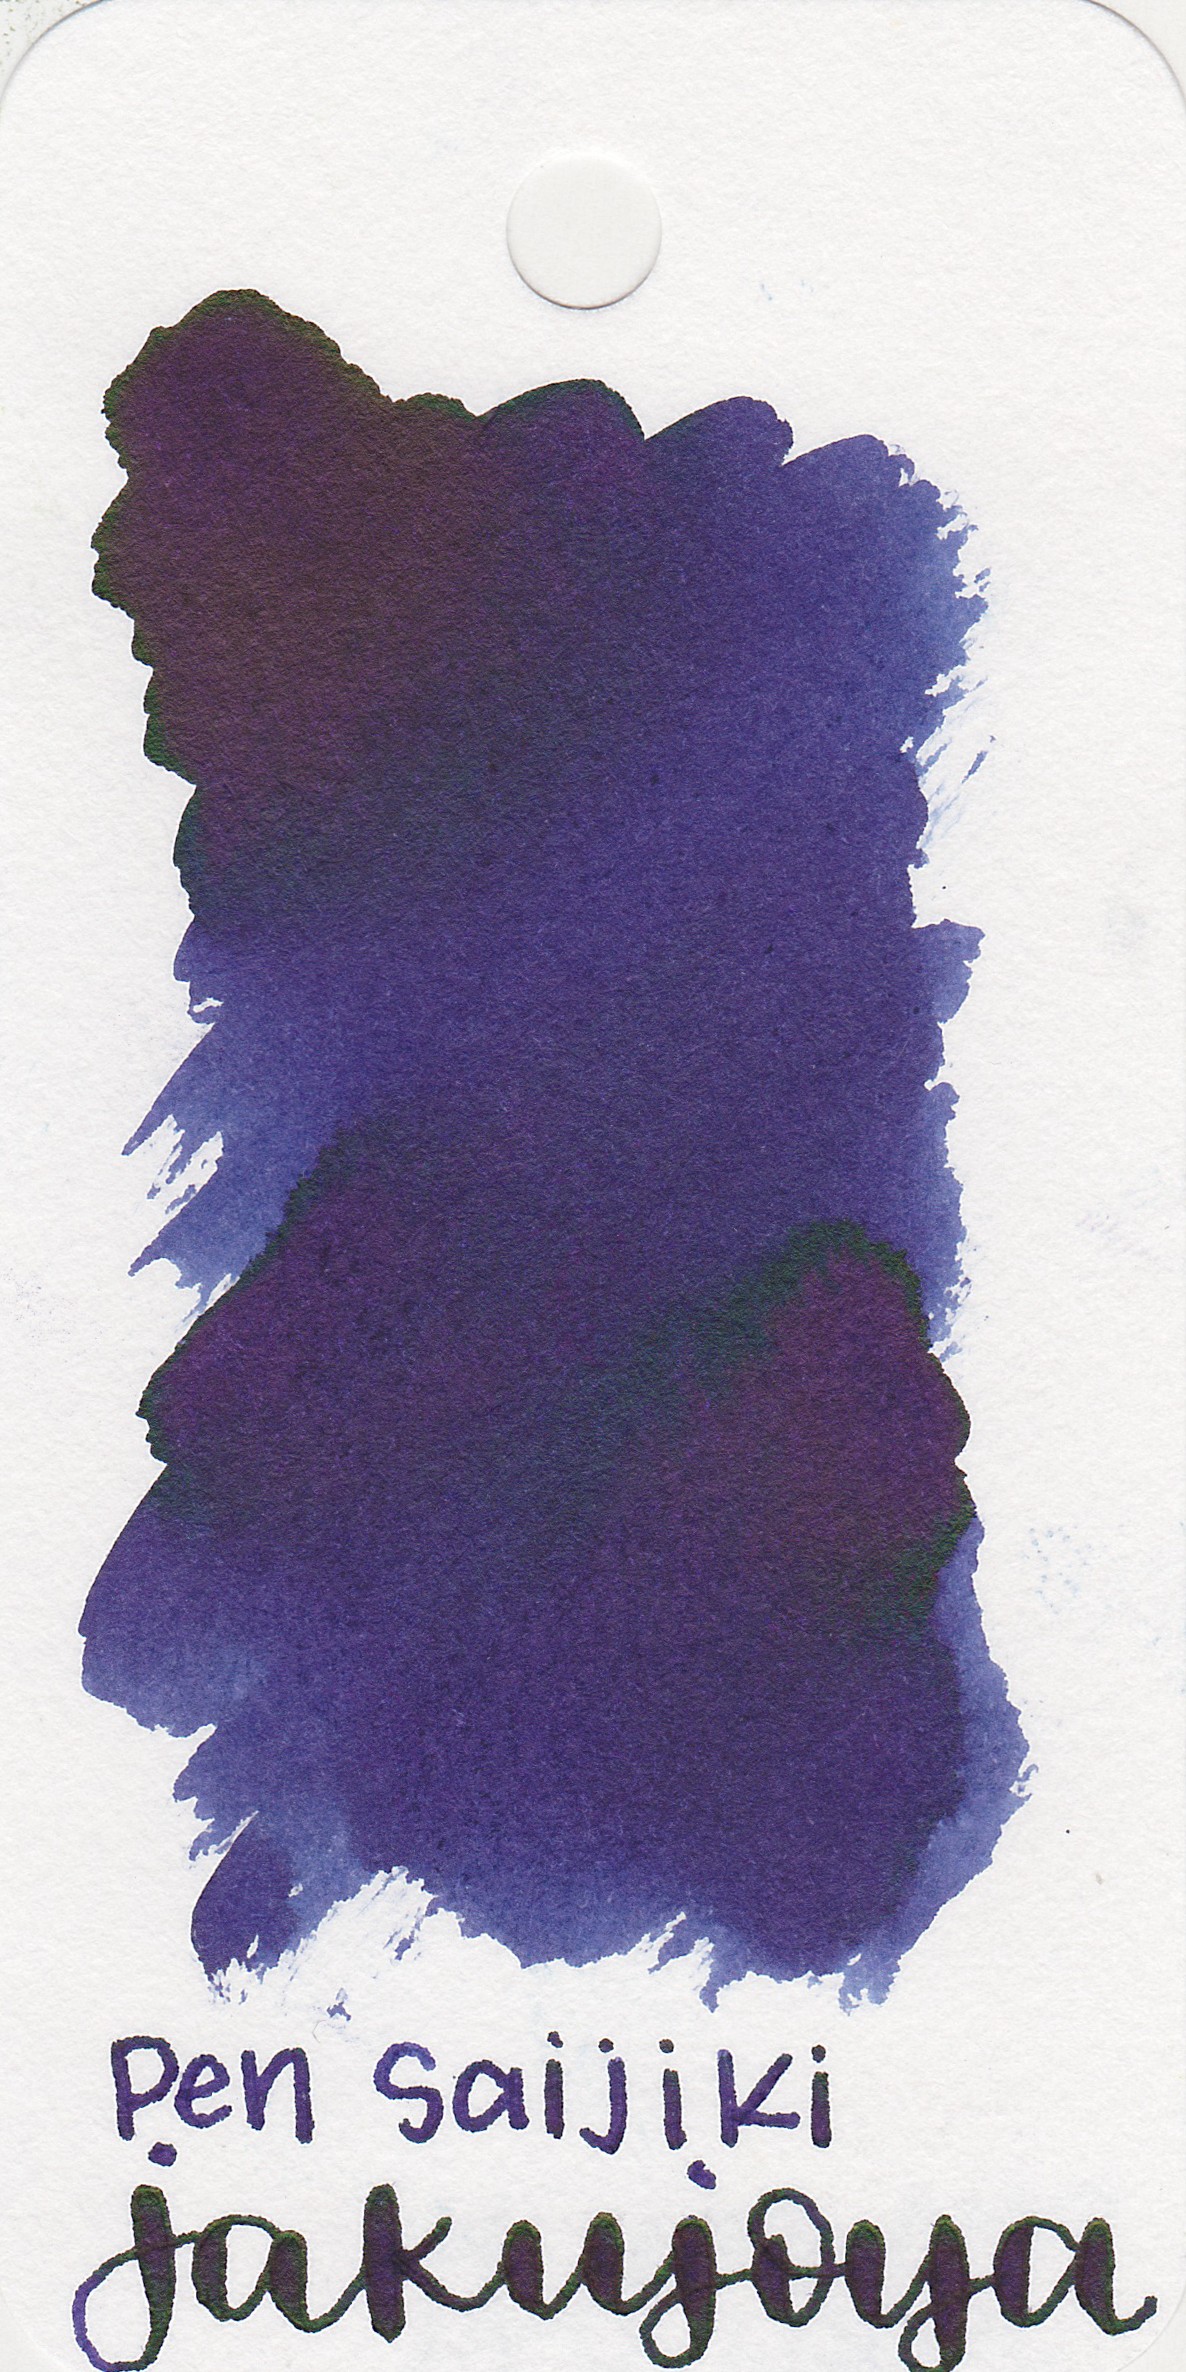 The color: - Jakujoya is a dark purple with some green and copper sheen.